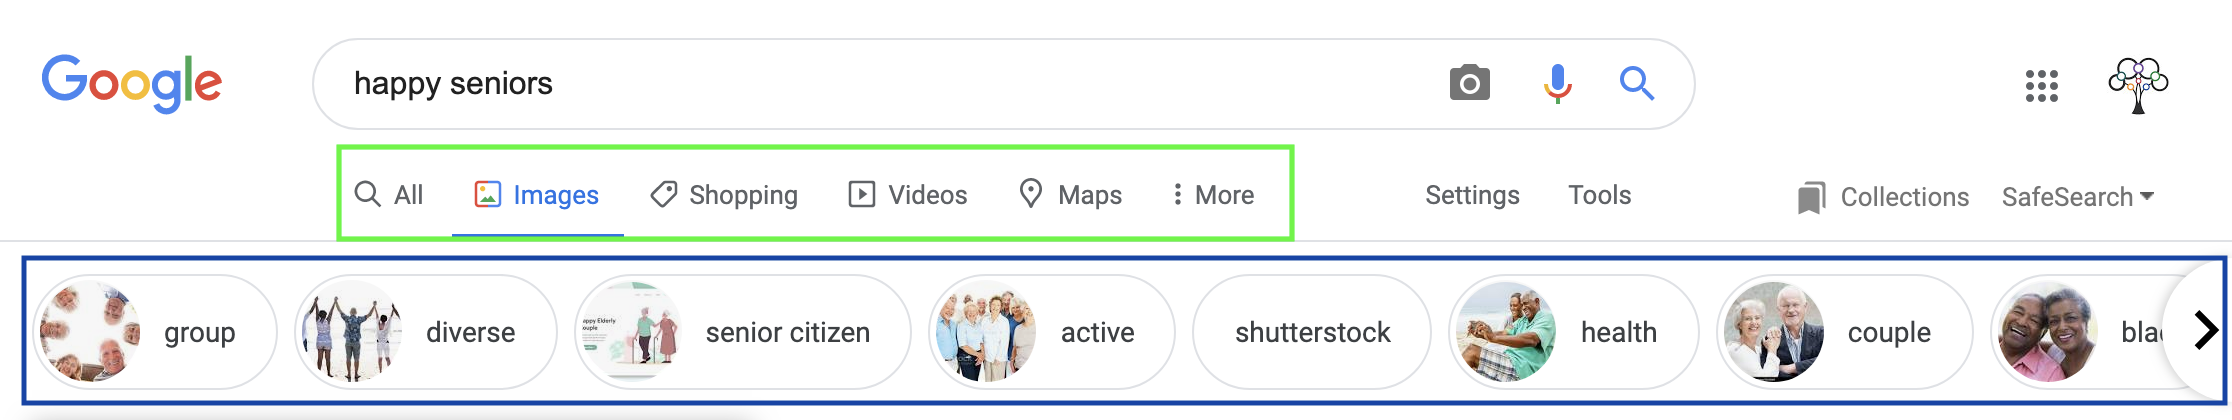 The image search result tools in Google search. The image tool menu includes options to specify the size, color, usage rights or type to change your results. A list of suggested keywords to add to the search appear below the tool menu.